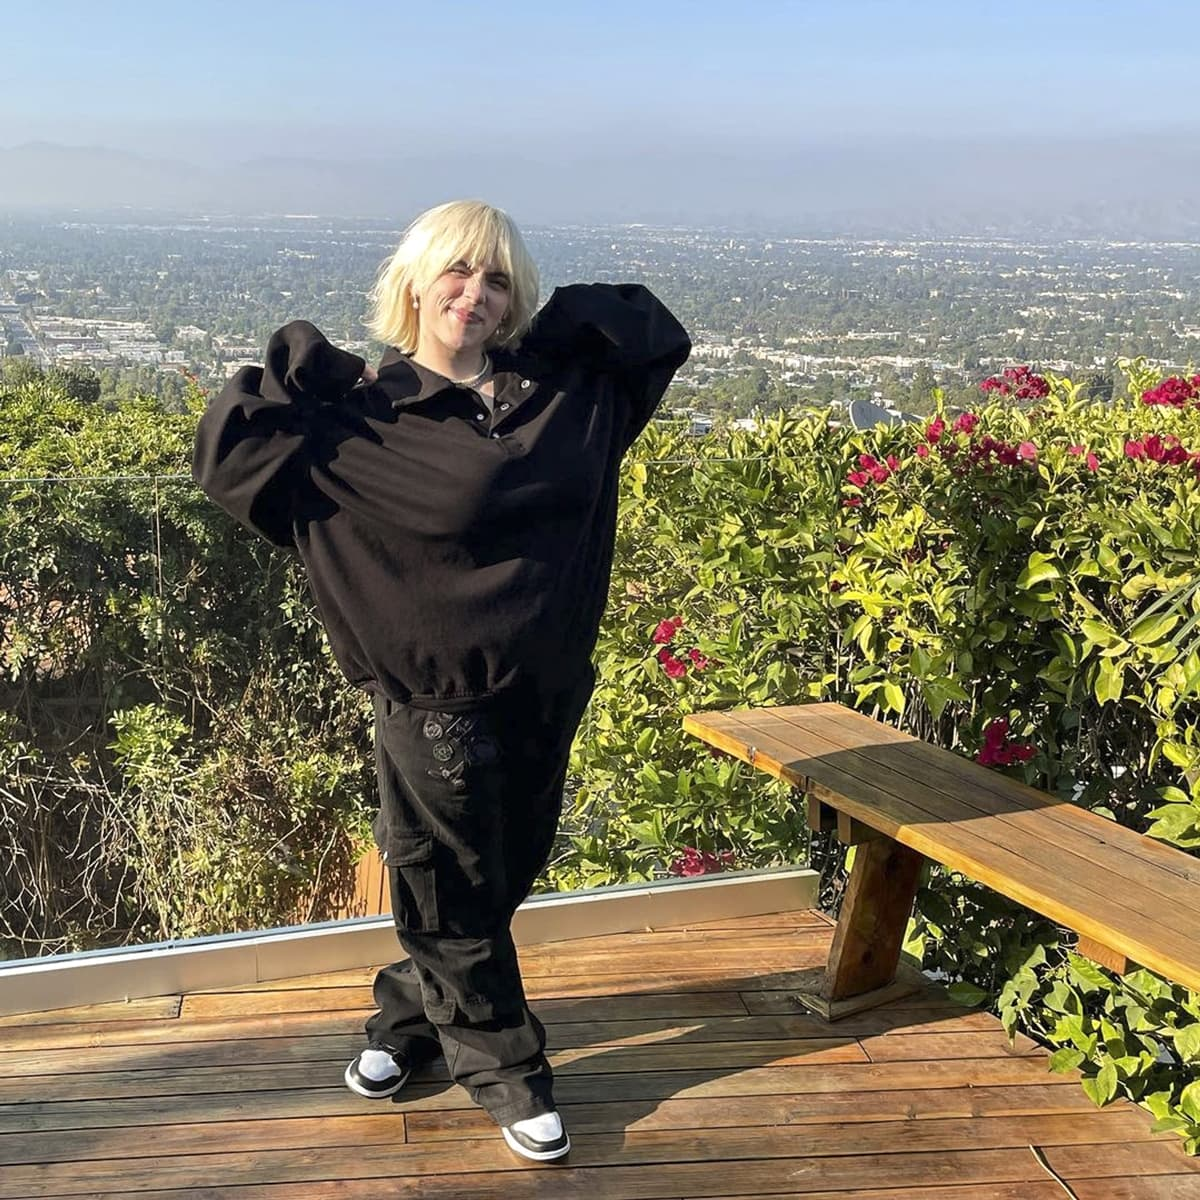 Billie Eilish is open about the pressures of always trying to look good